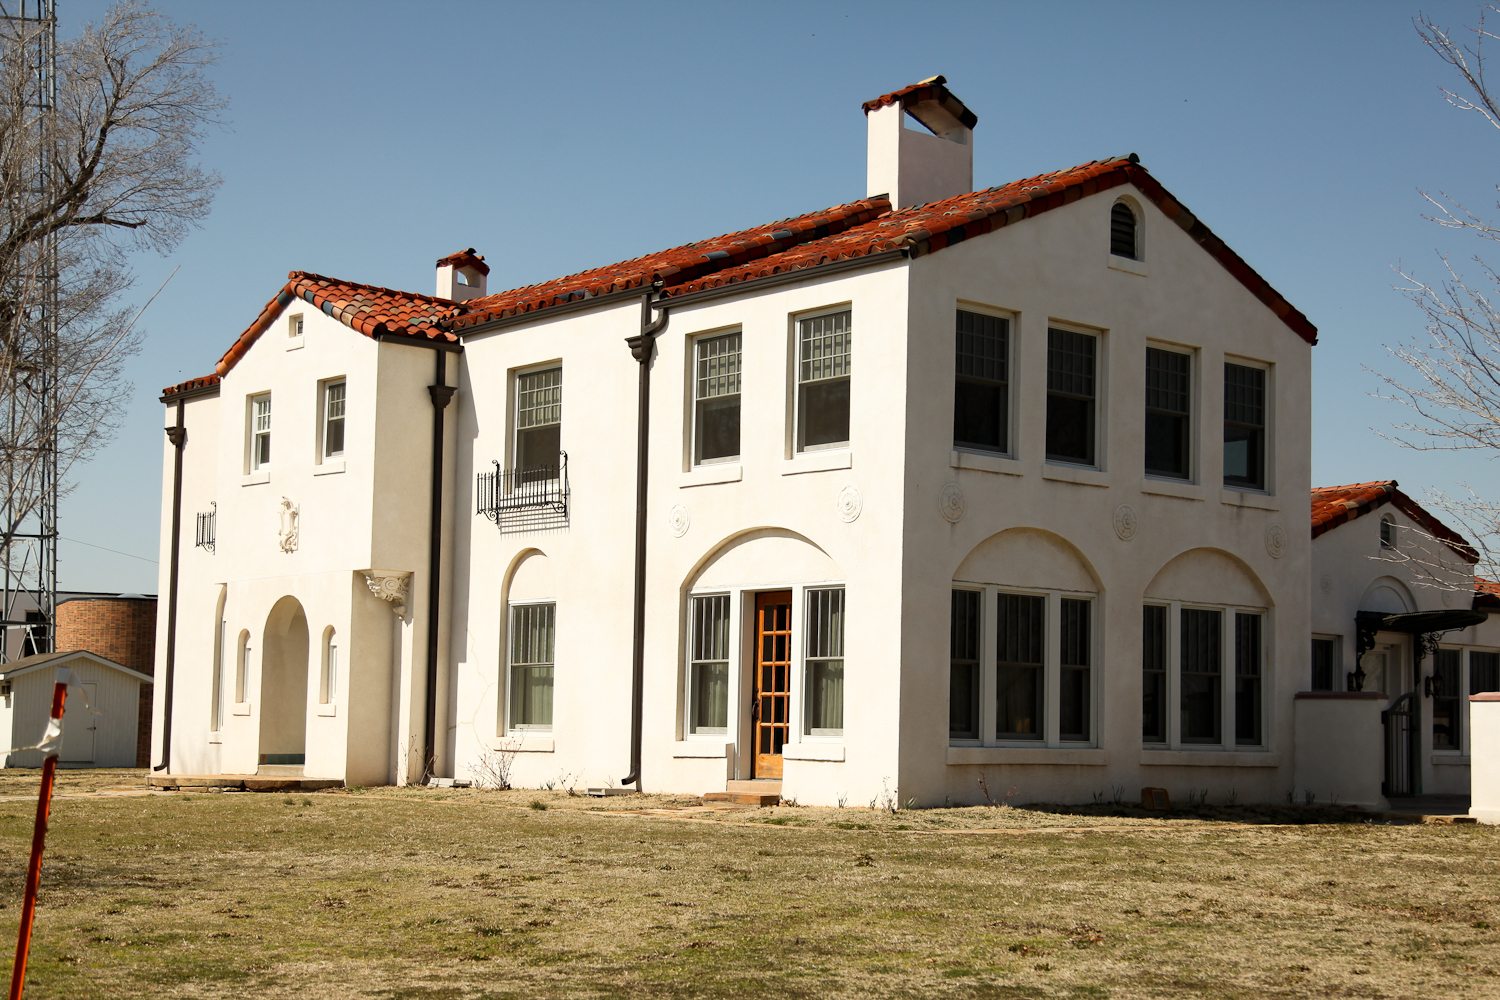 Ceremony set for mansion's addition to National Register of Historic Places